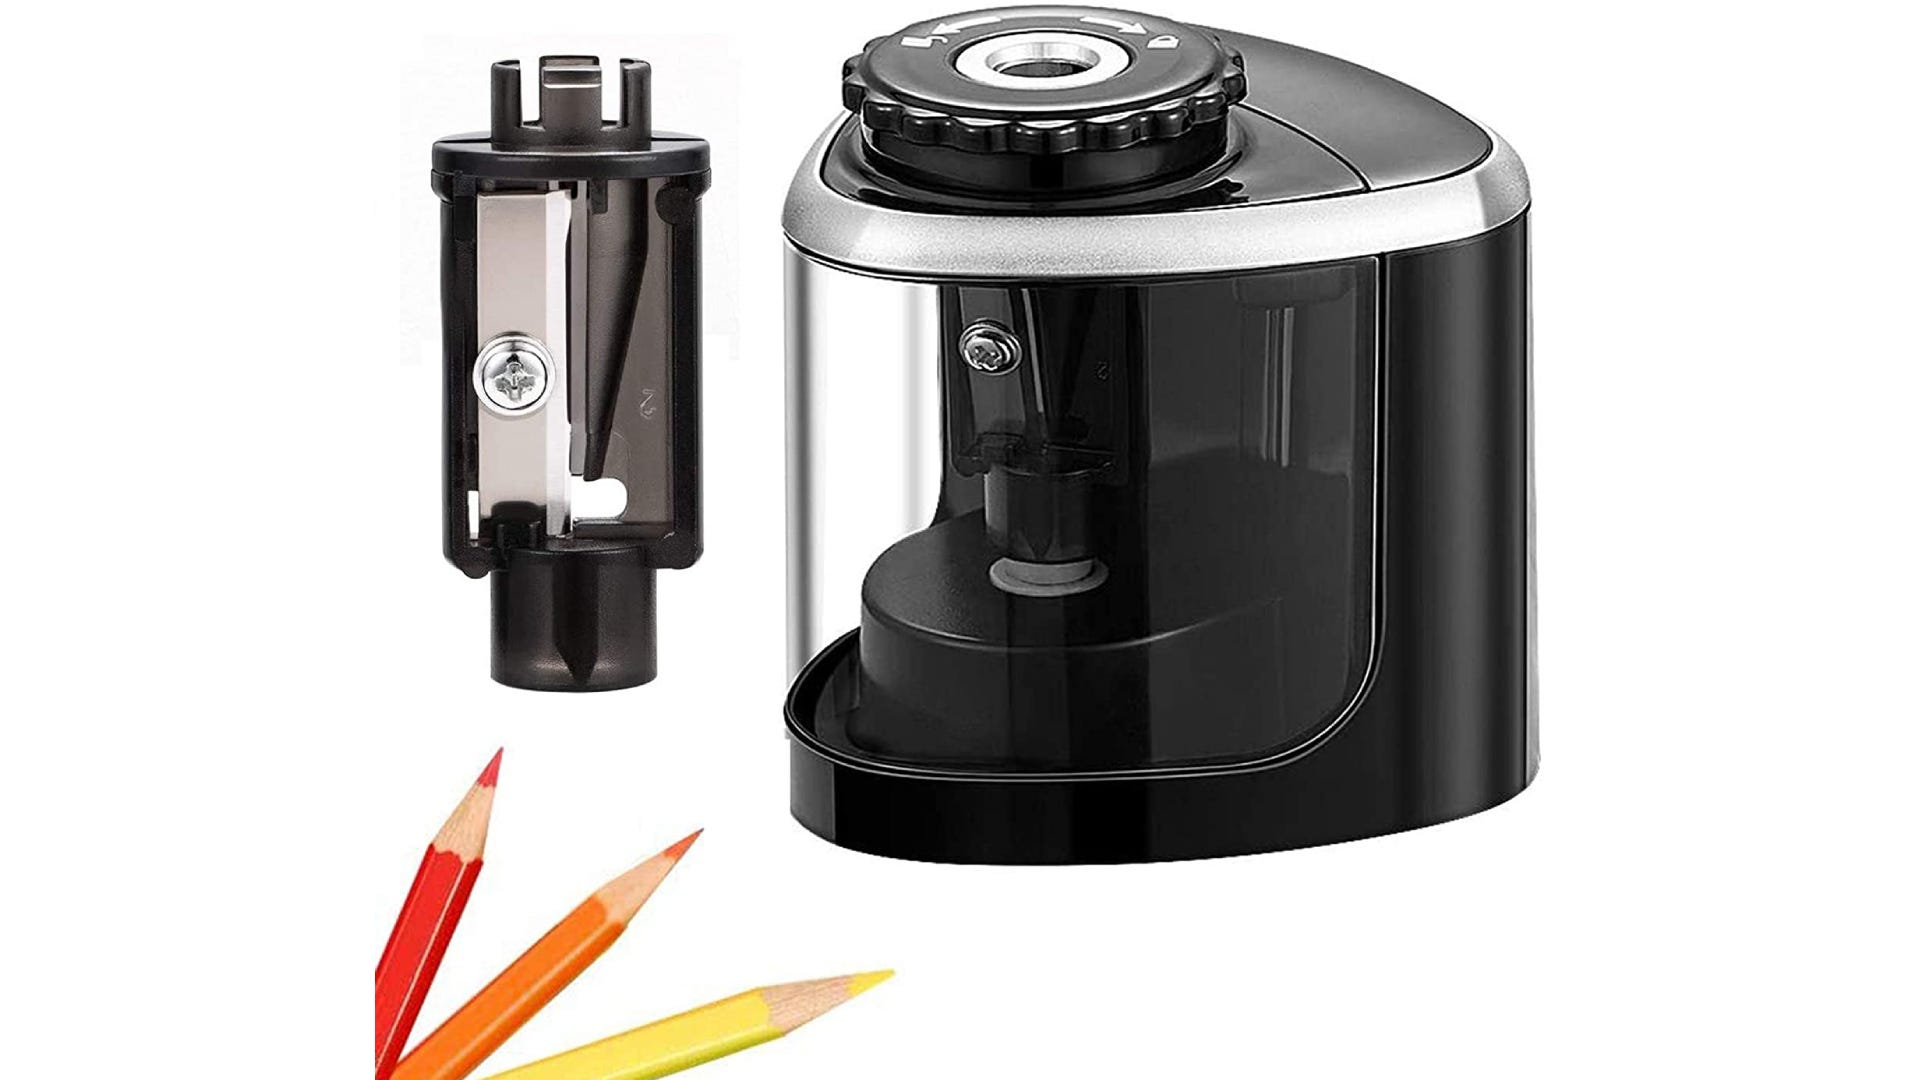 A black pencil sharpener pictured with its blade component and three colored pencils.